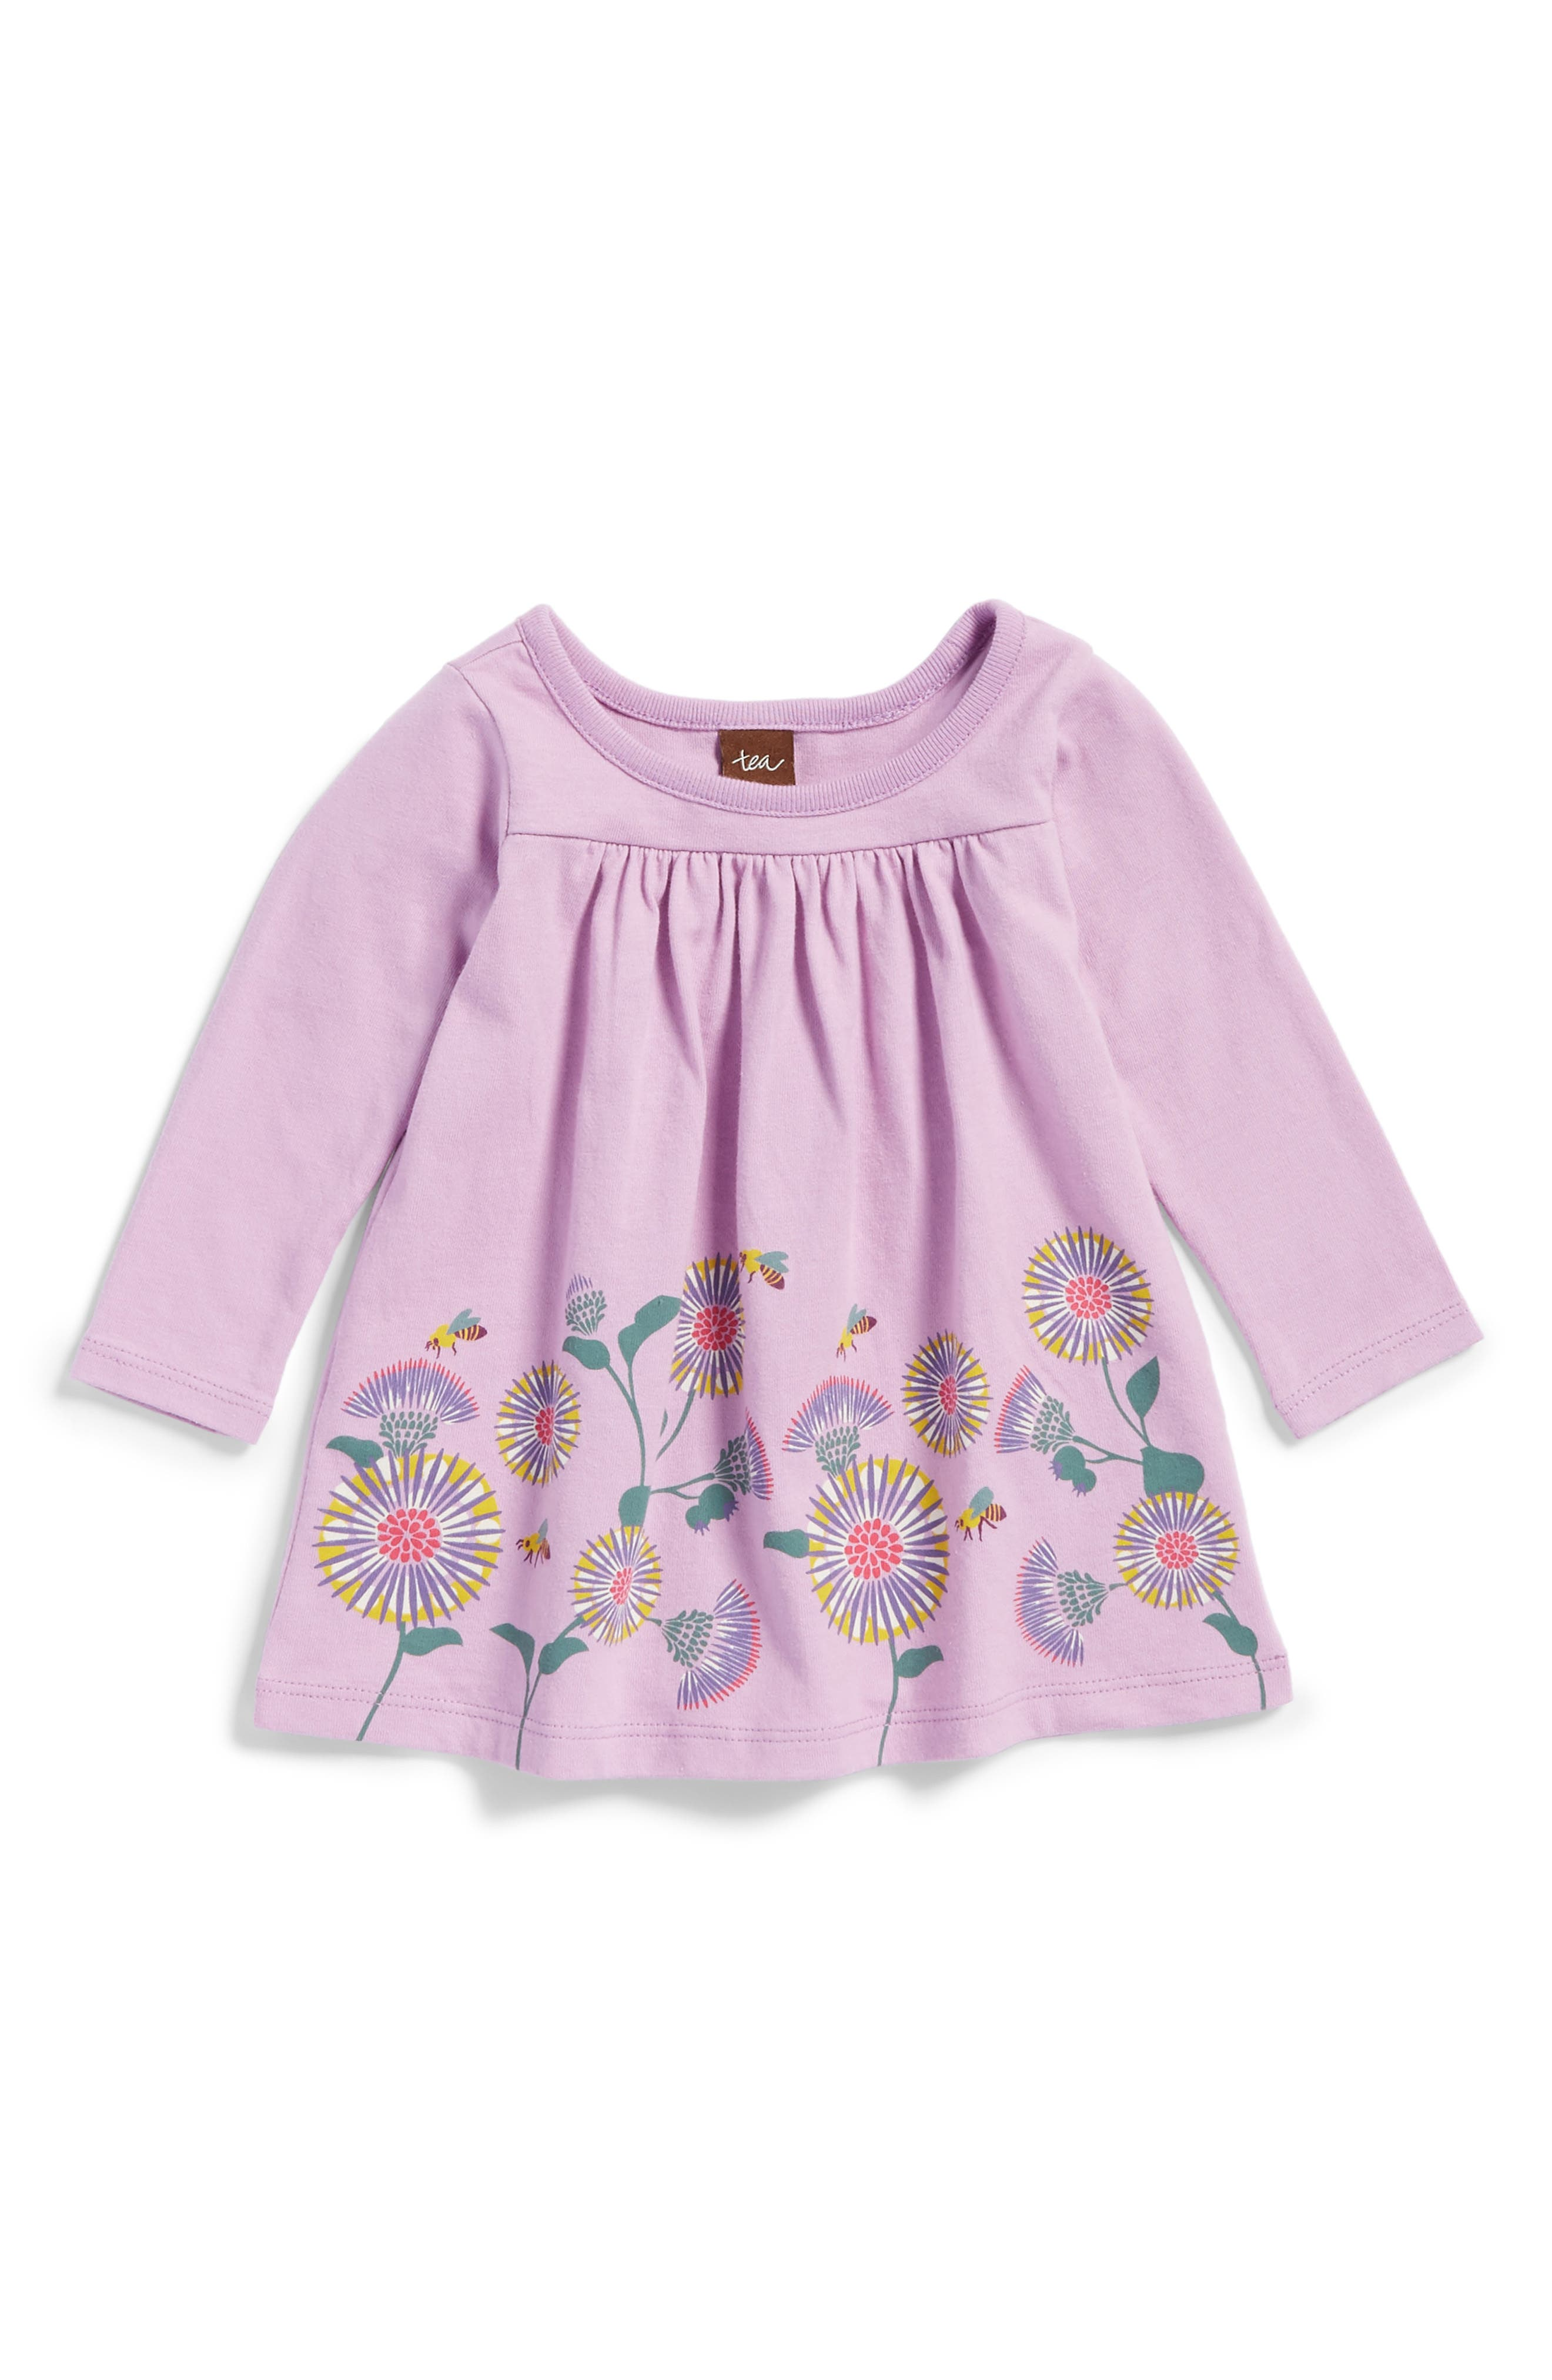 Alternate Image 1 Selected - Tea Collection Thistle Print Dress (Baby Girls)